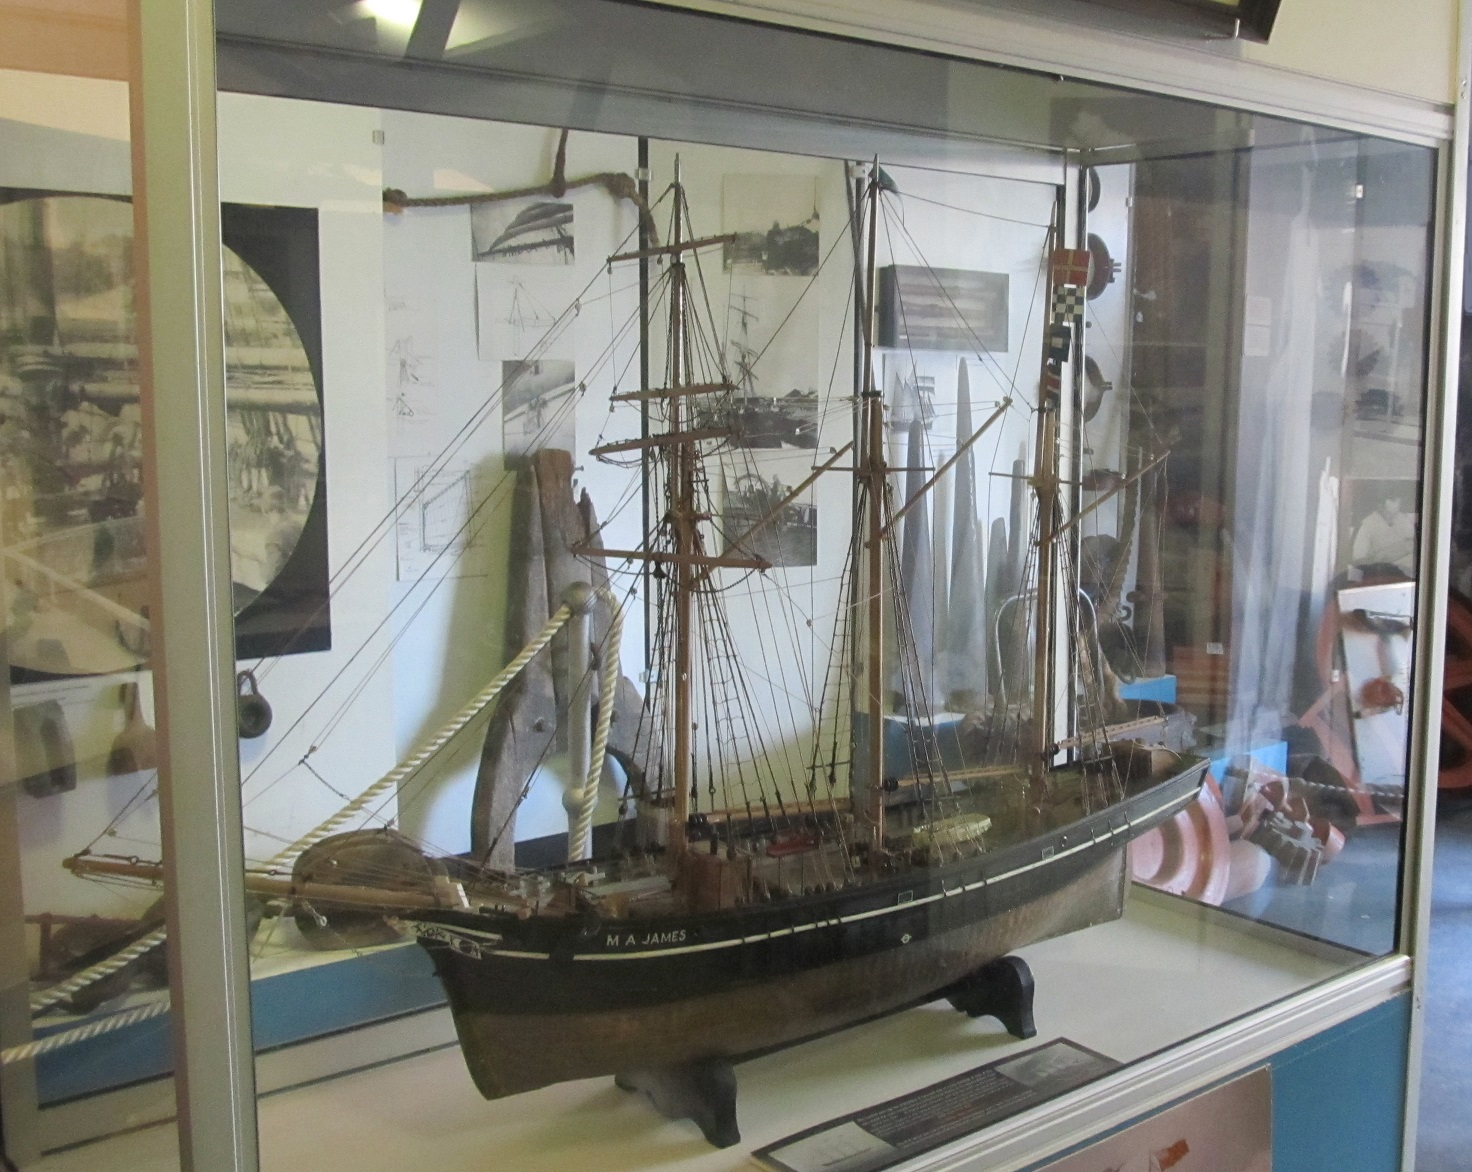 Model of the schooner M.A.James